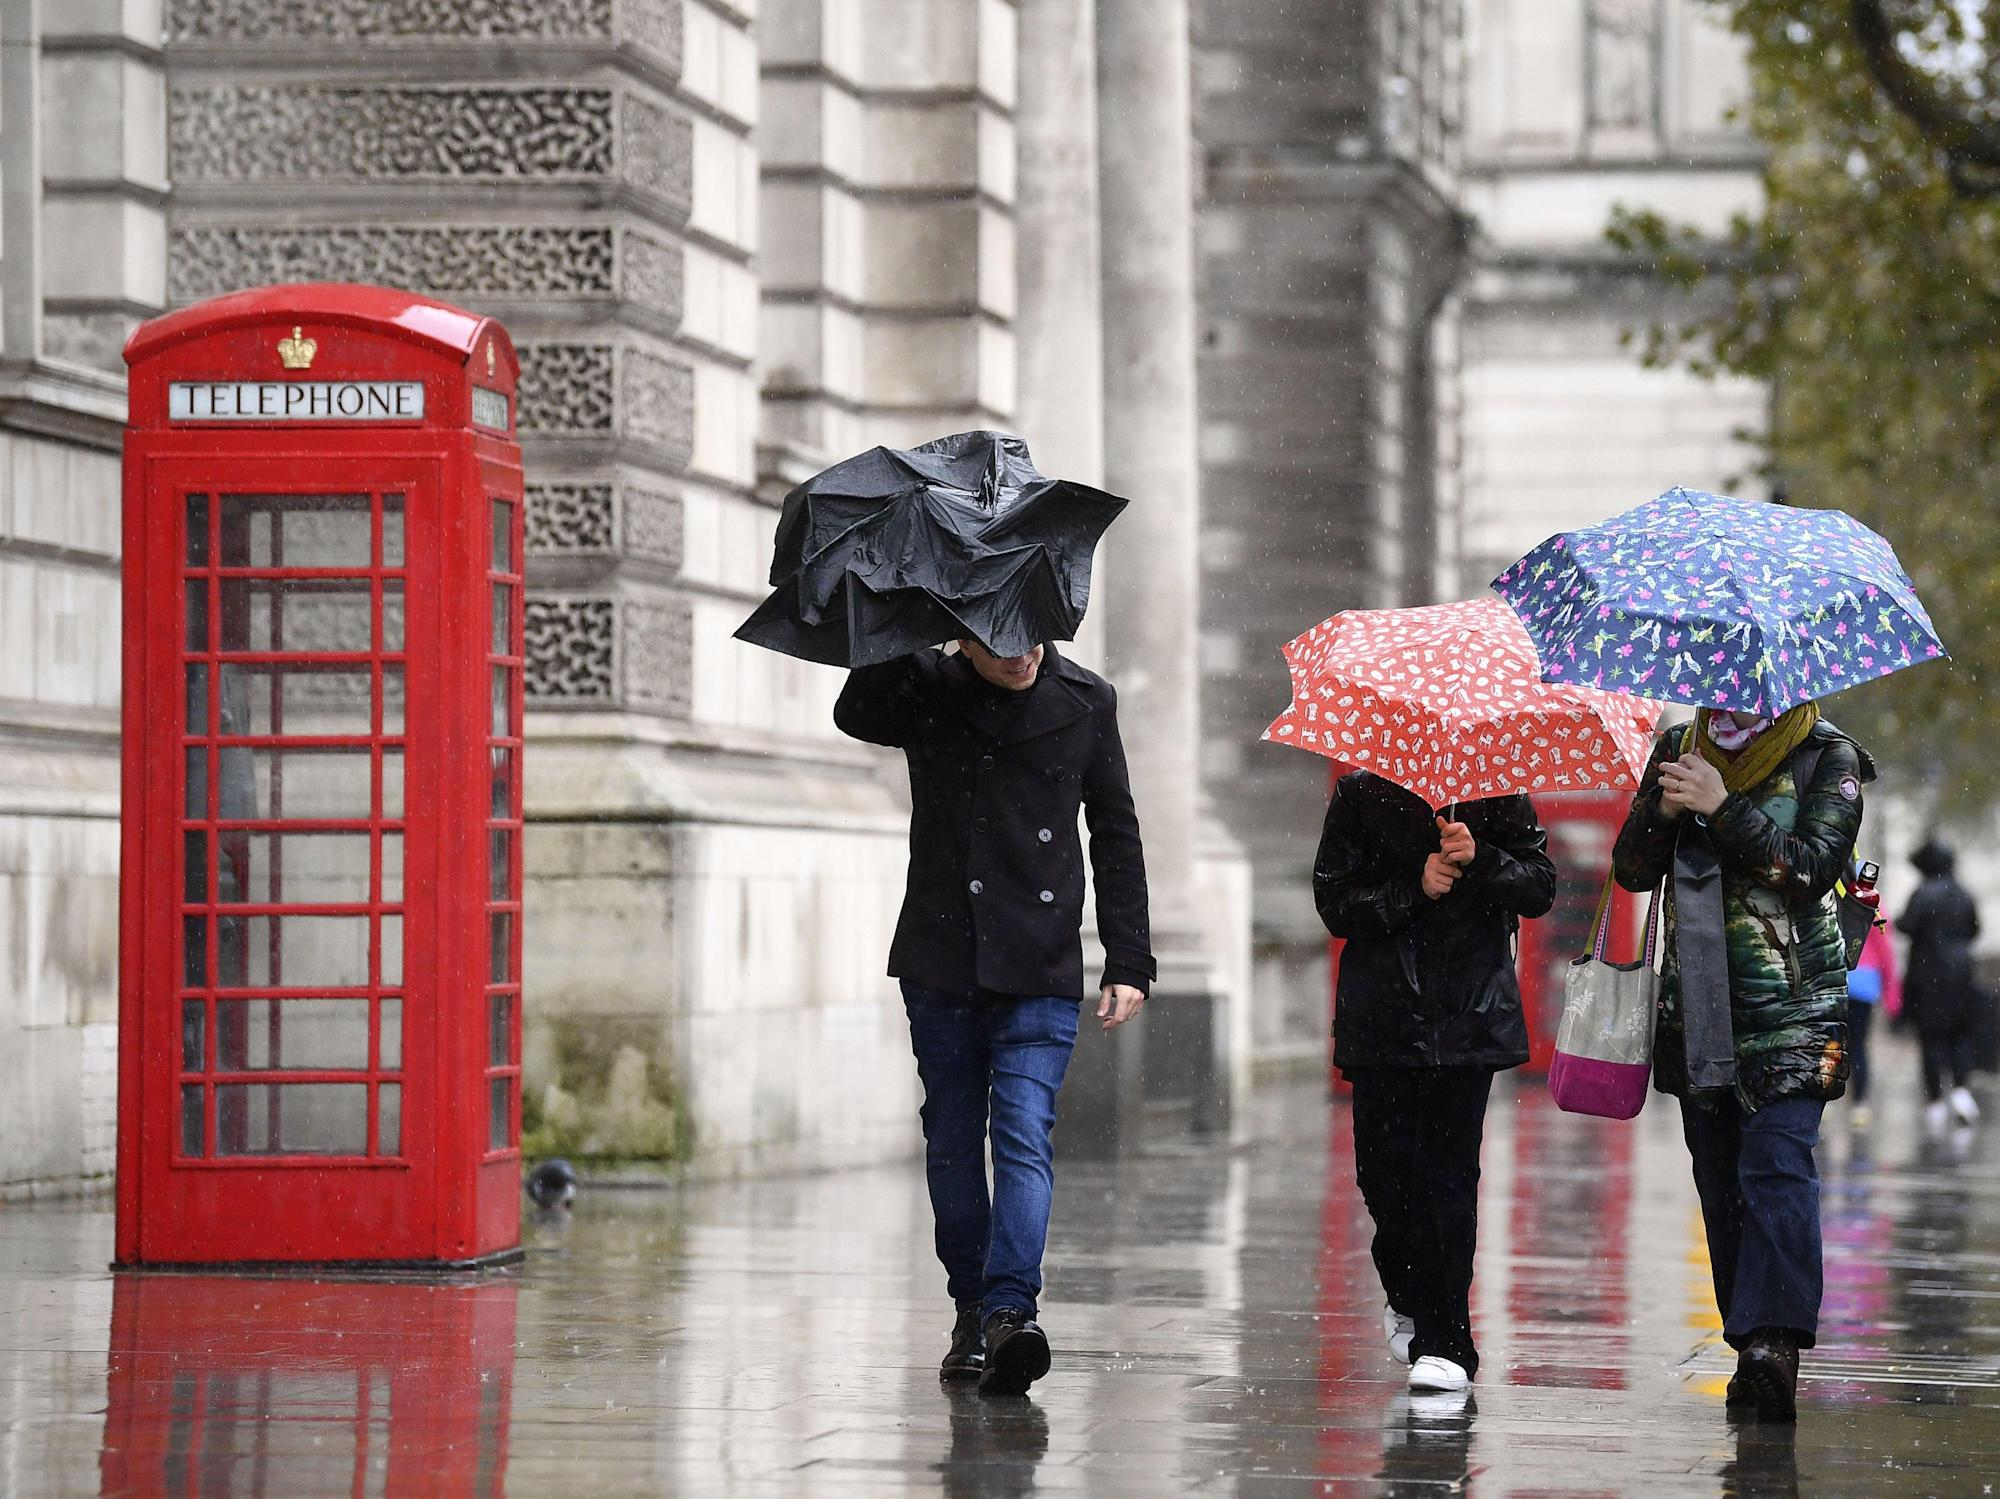 UK weather: Britain braces for snow and rain in 'rollercoaster' week as temperatures plunge